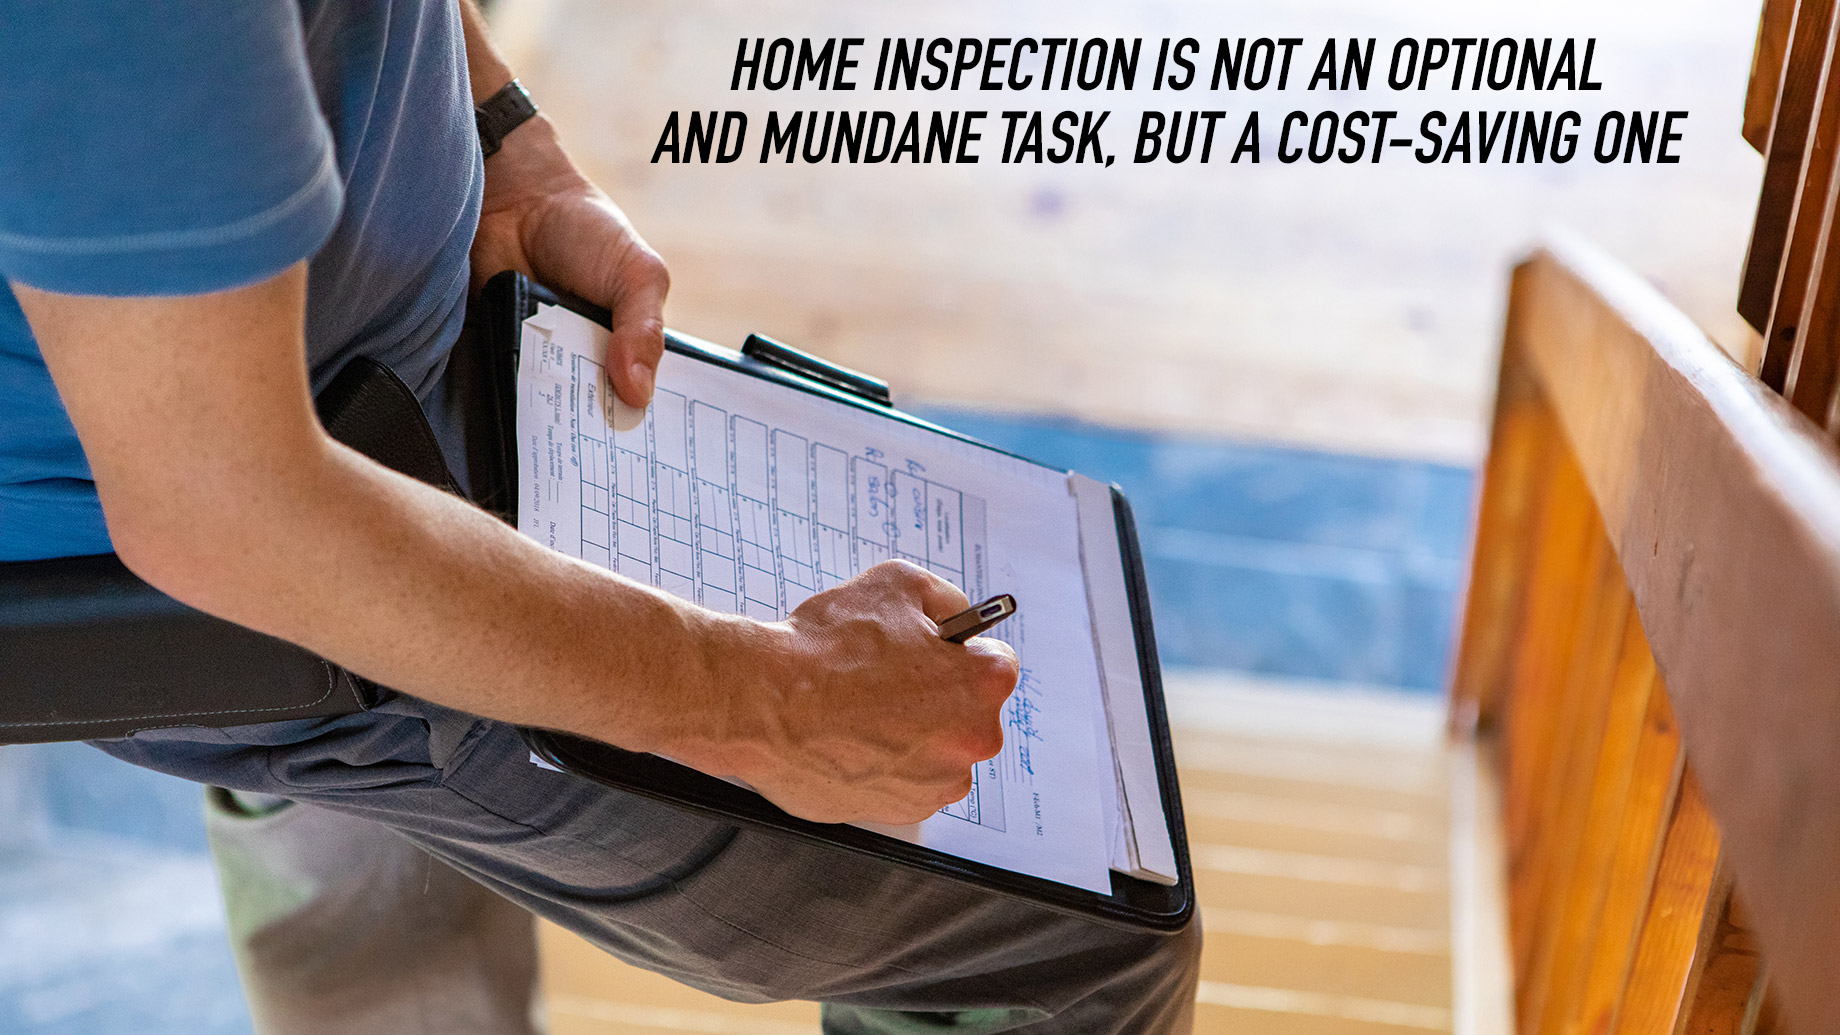 Home Inspection is Not an Optional and Mundane Task, but a Cost-Saving One